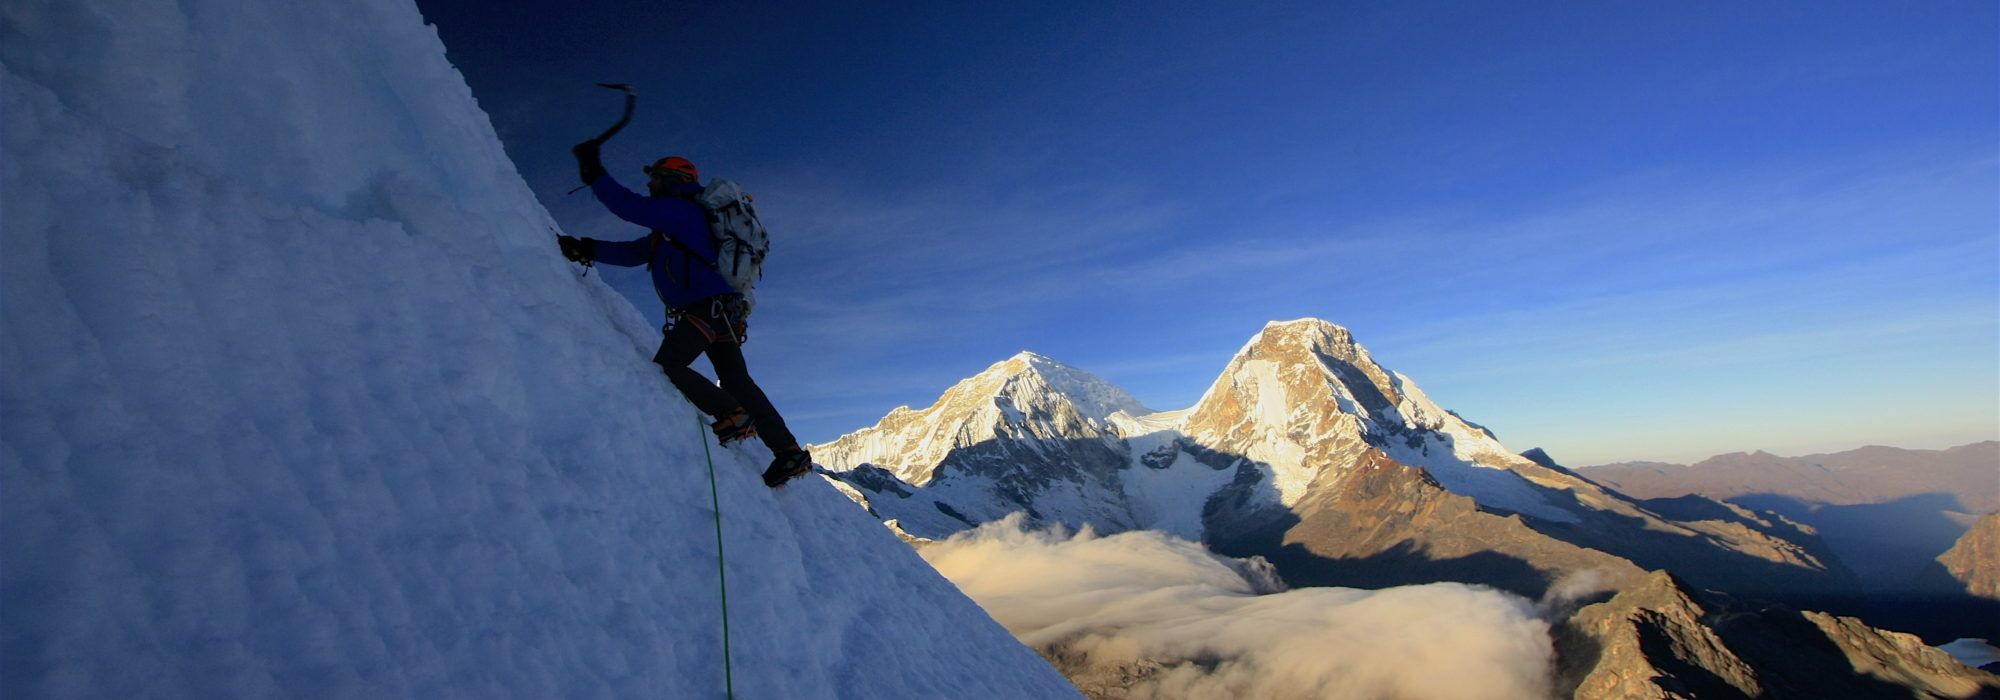 mountaineering  - mountain climbing